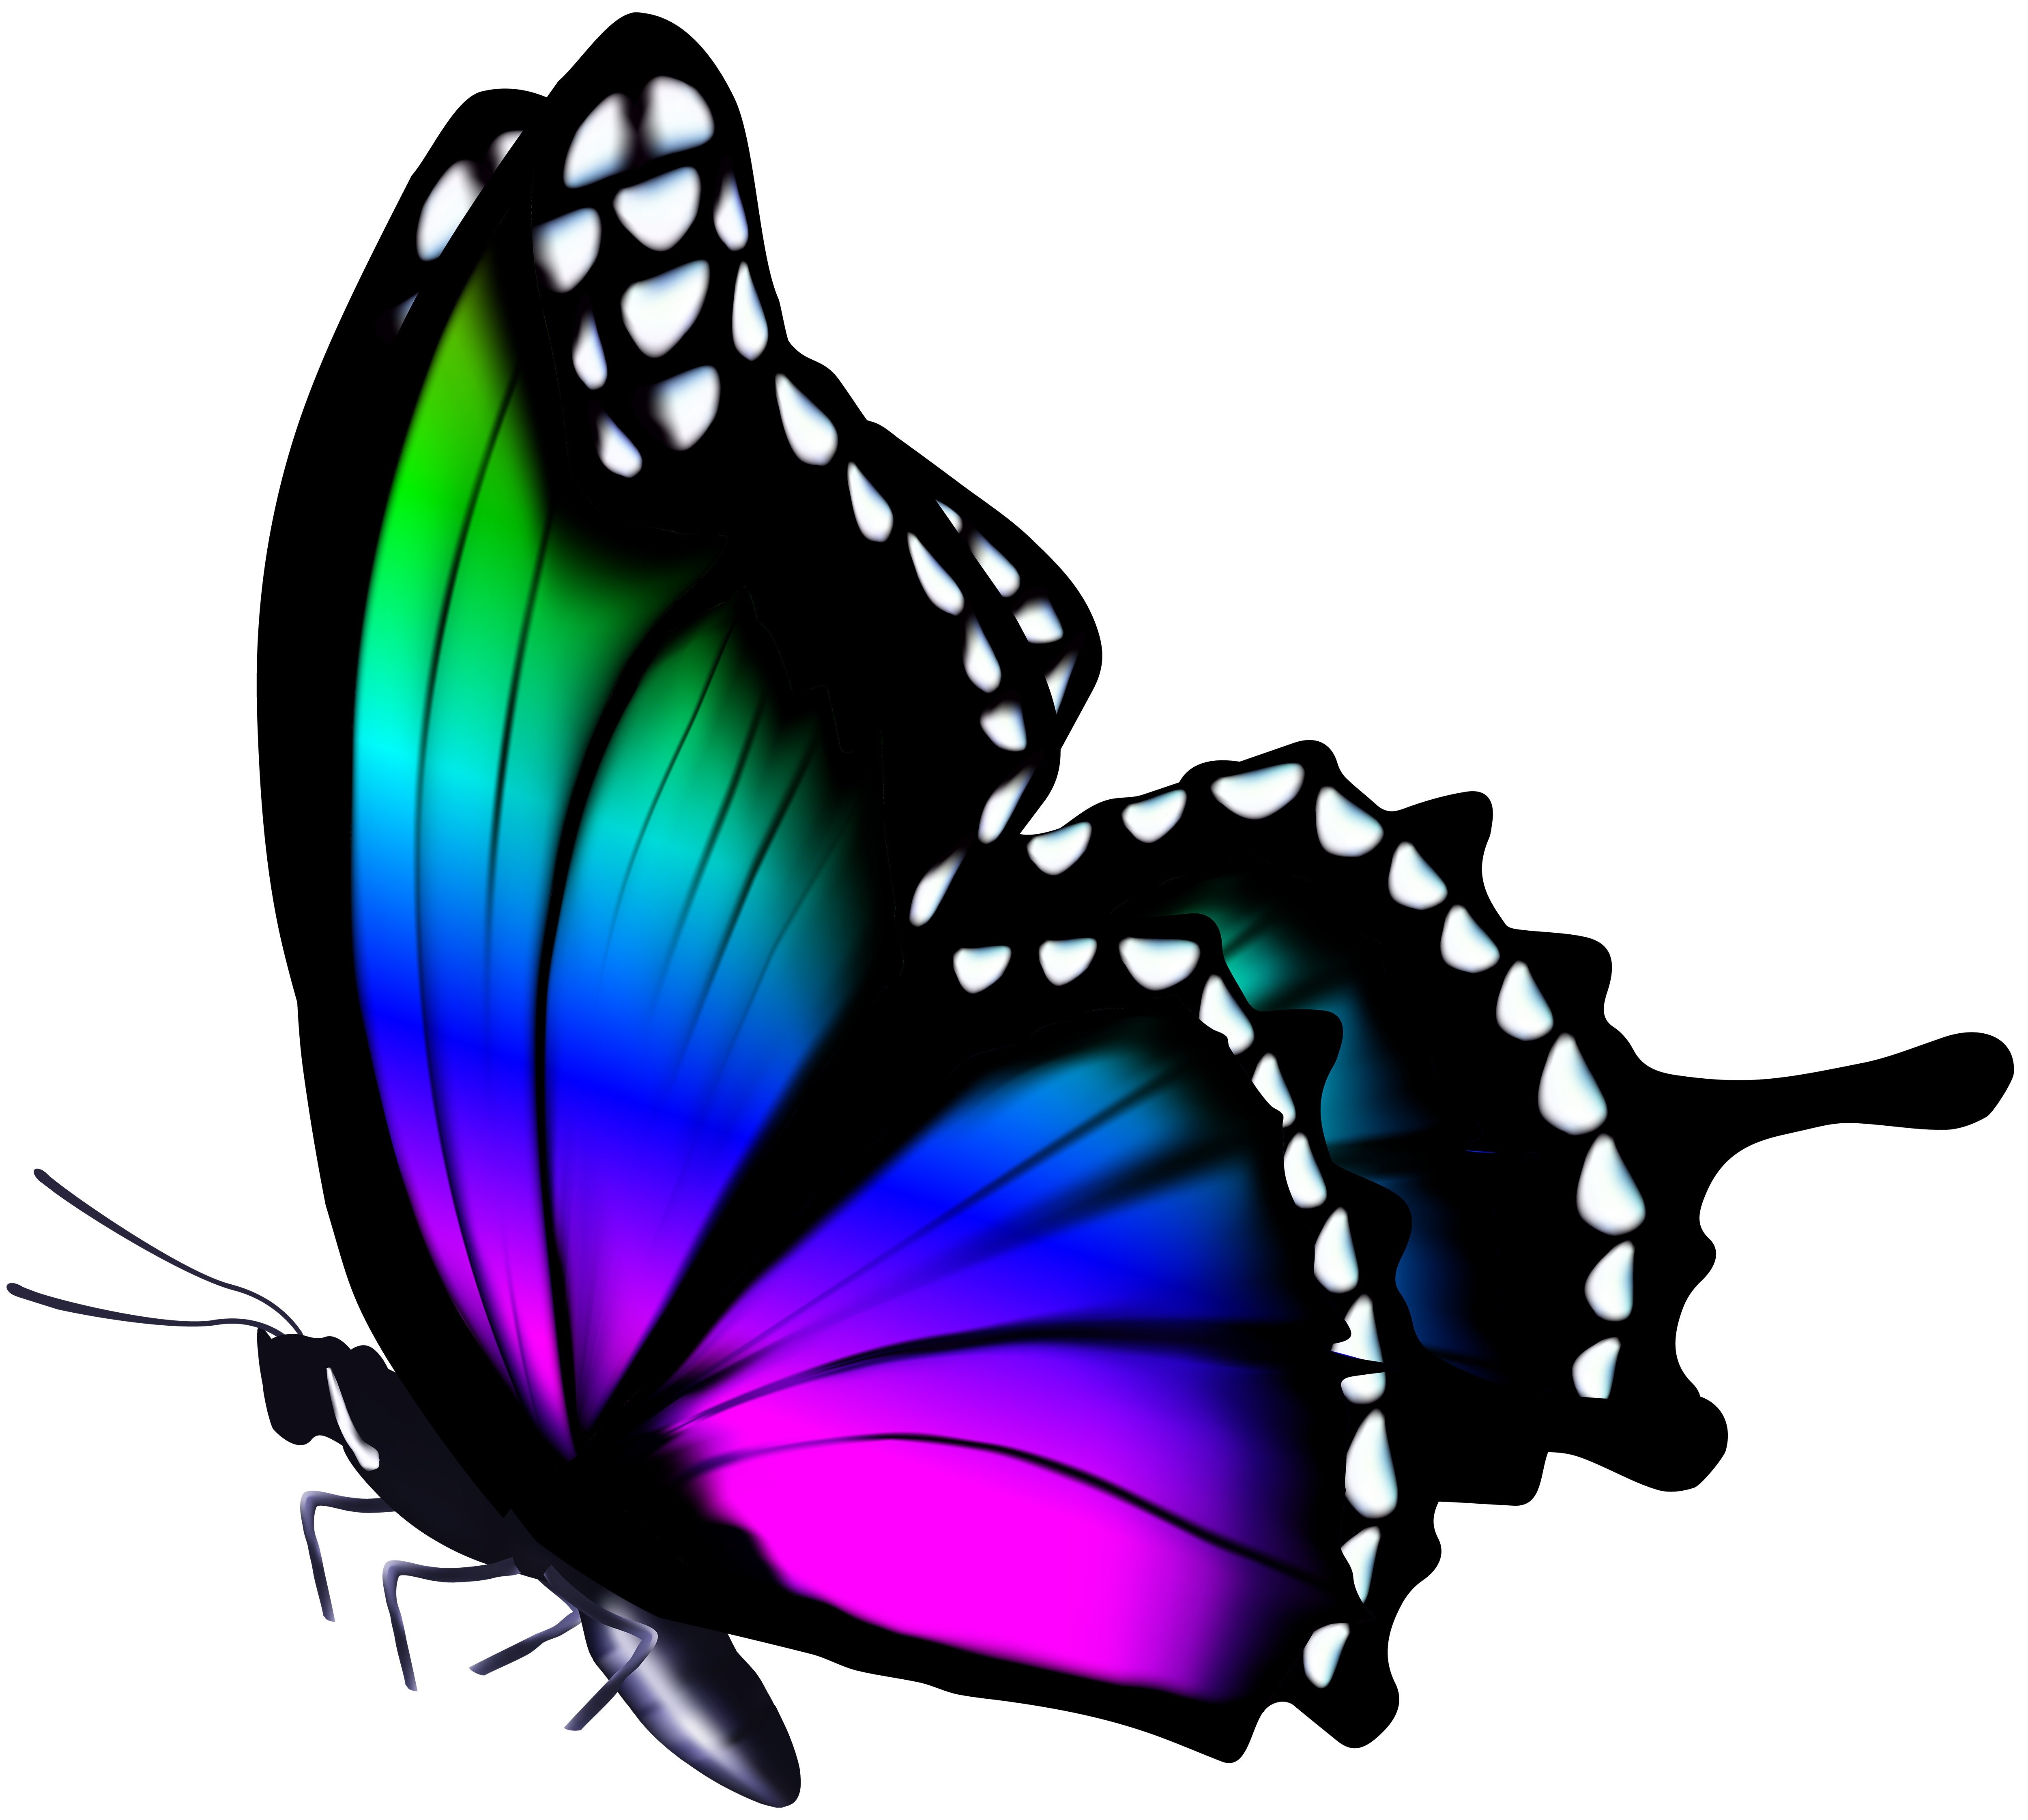 Vines clipart butterfly. Galaxy frames illustrations hd